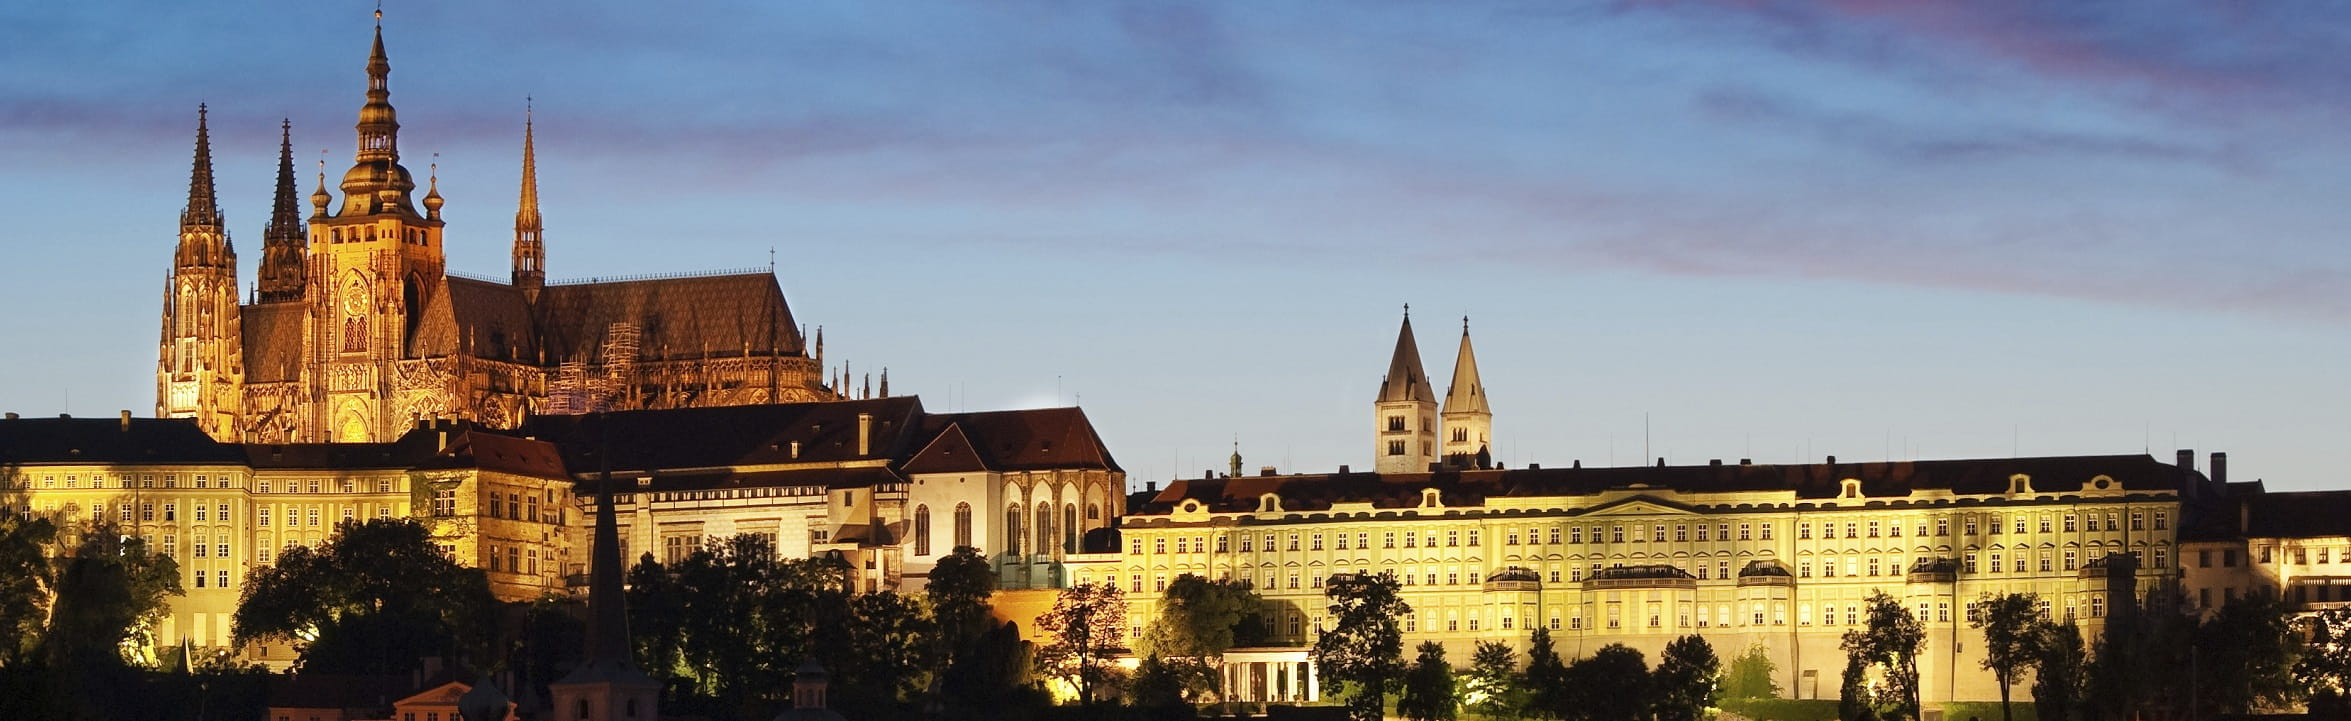 Prague Castle night